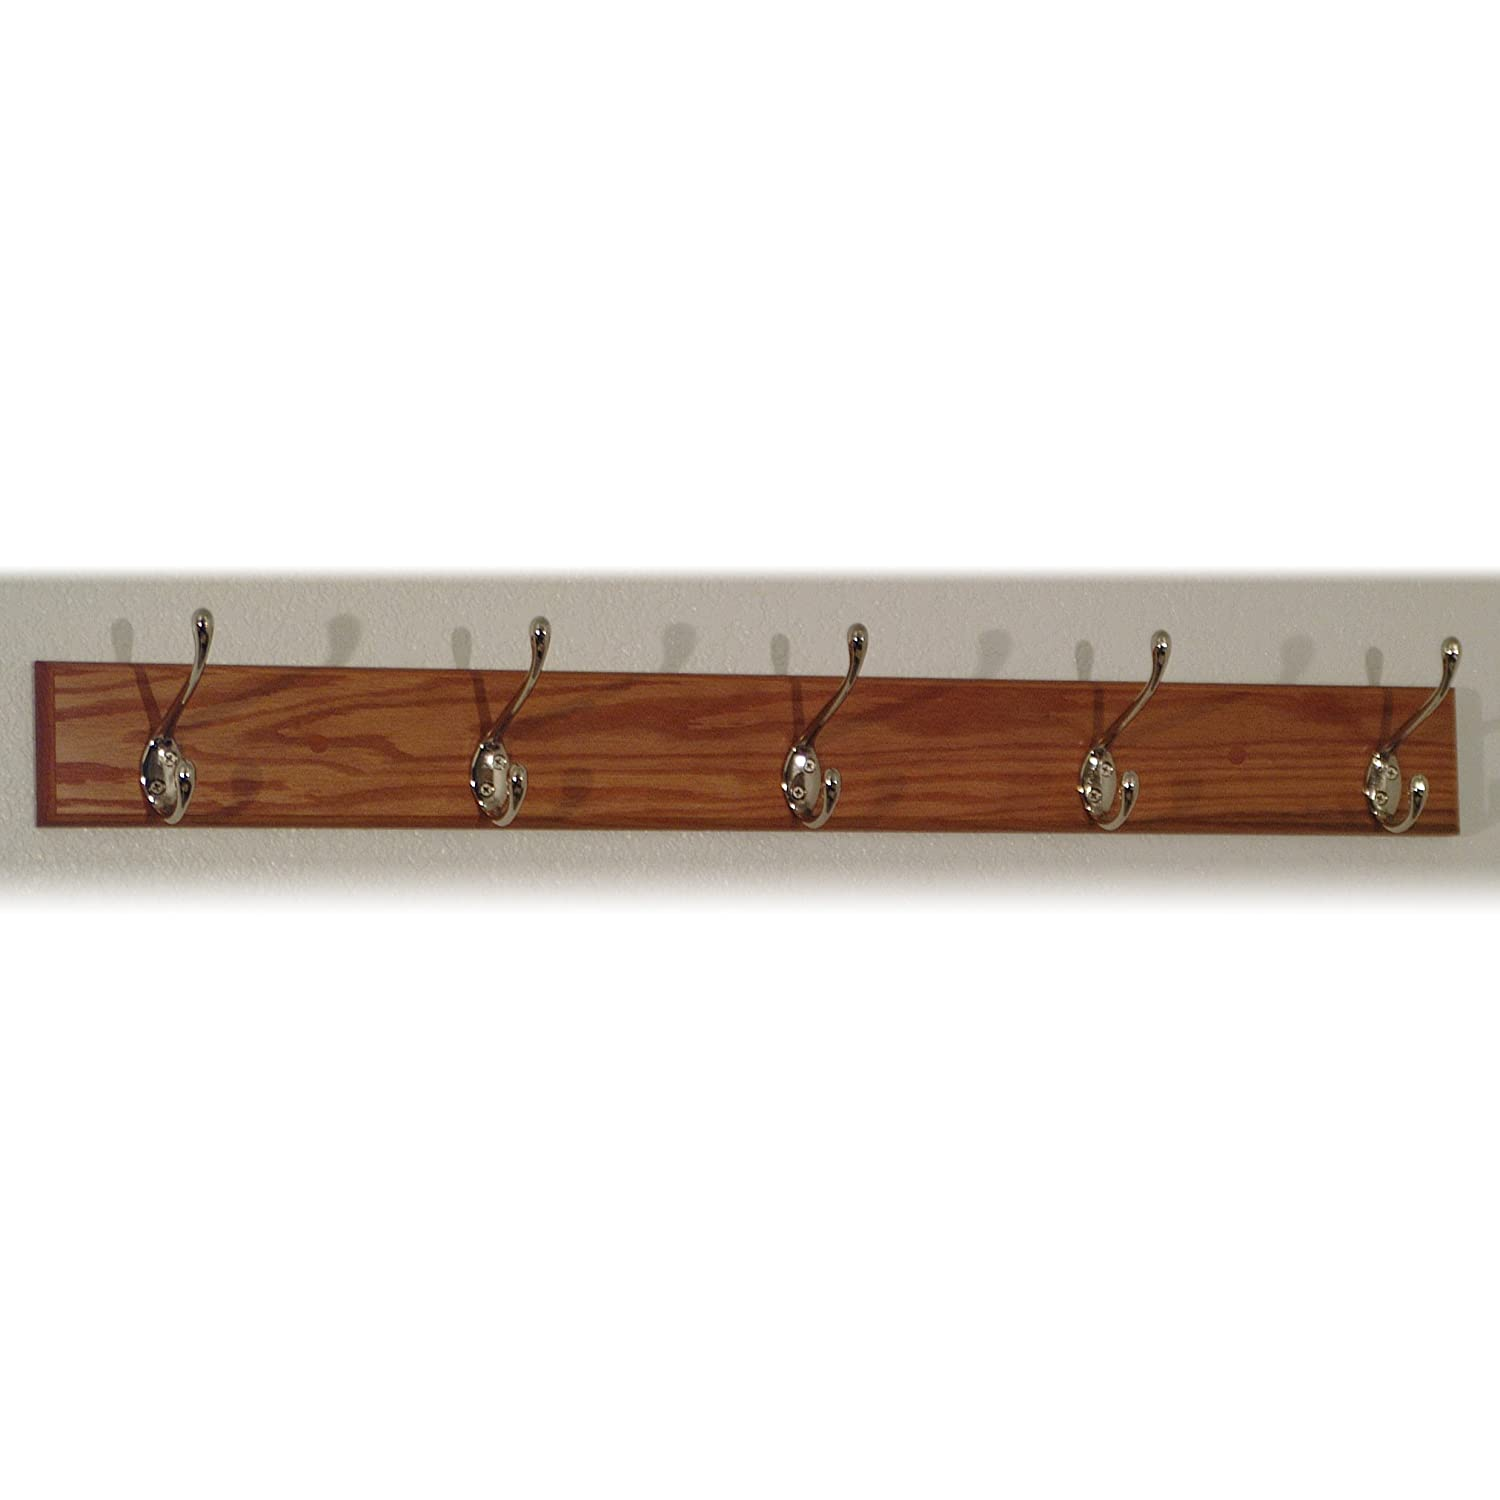 Wooden Mallet 36-Inch 5-Nickel Hook Coat Rack, Medium Oak